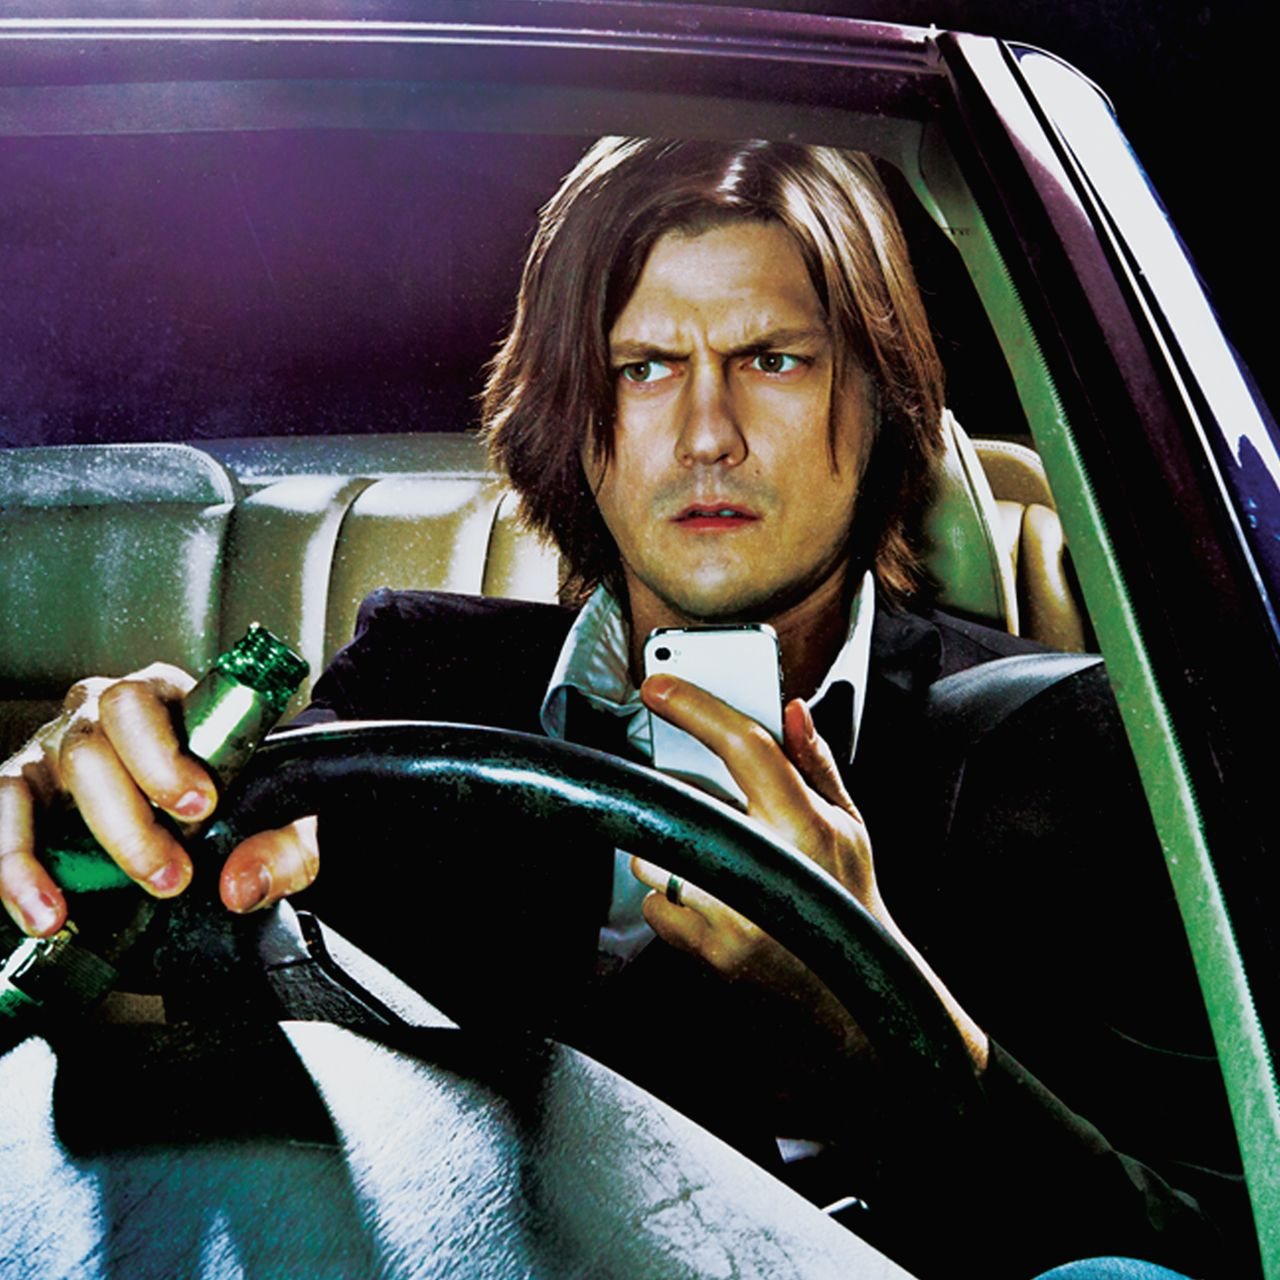 trevor moore what about mouthwashtrevor moore high in church перевод, trevor moore - high in church, trevor moore drunk texts to myself, trevor moore pope rap перевод, trevor moore what about mouthwash, trevor moore opened a law office, trevor moore dinosaur rap, trevor moore show, trevor moore geniuses, trevor moore 2016, trevor moore what about mouthwash lyrics, trevor moore time for guillotines, trevor moore linkedin, trevor moore lyrics, trevor moore nhl, trevor moore the pope rap, trevor moore founding fathers lyrics, trevor moore founding fathers rap, trevor moore the ballad of billy john, trevor moore high in church lyrics